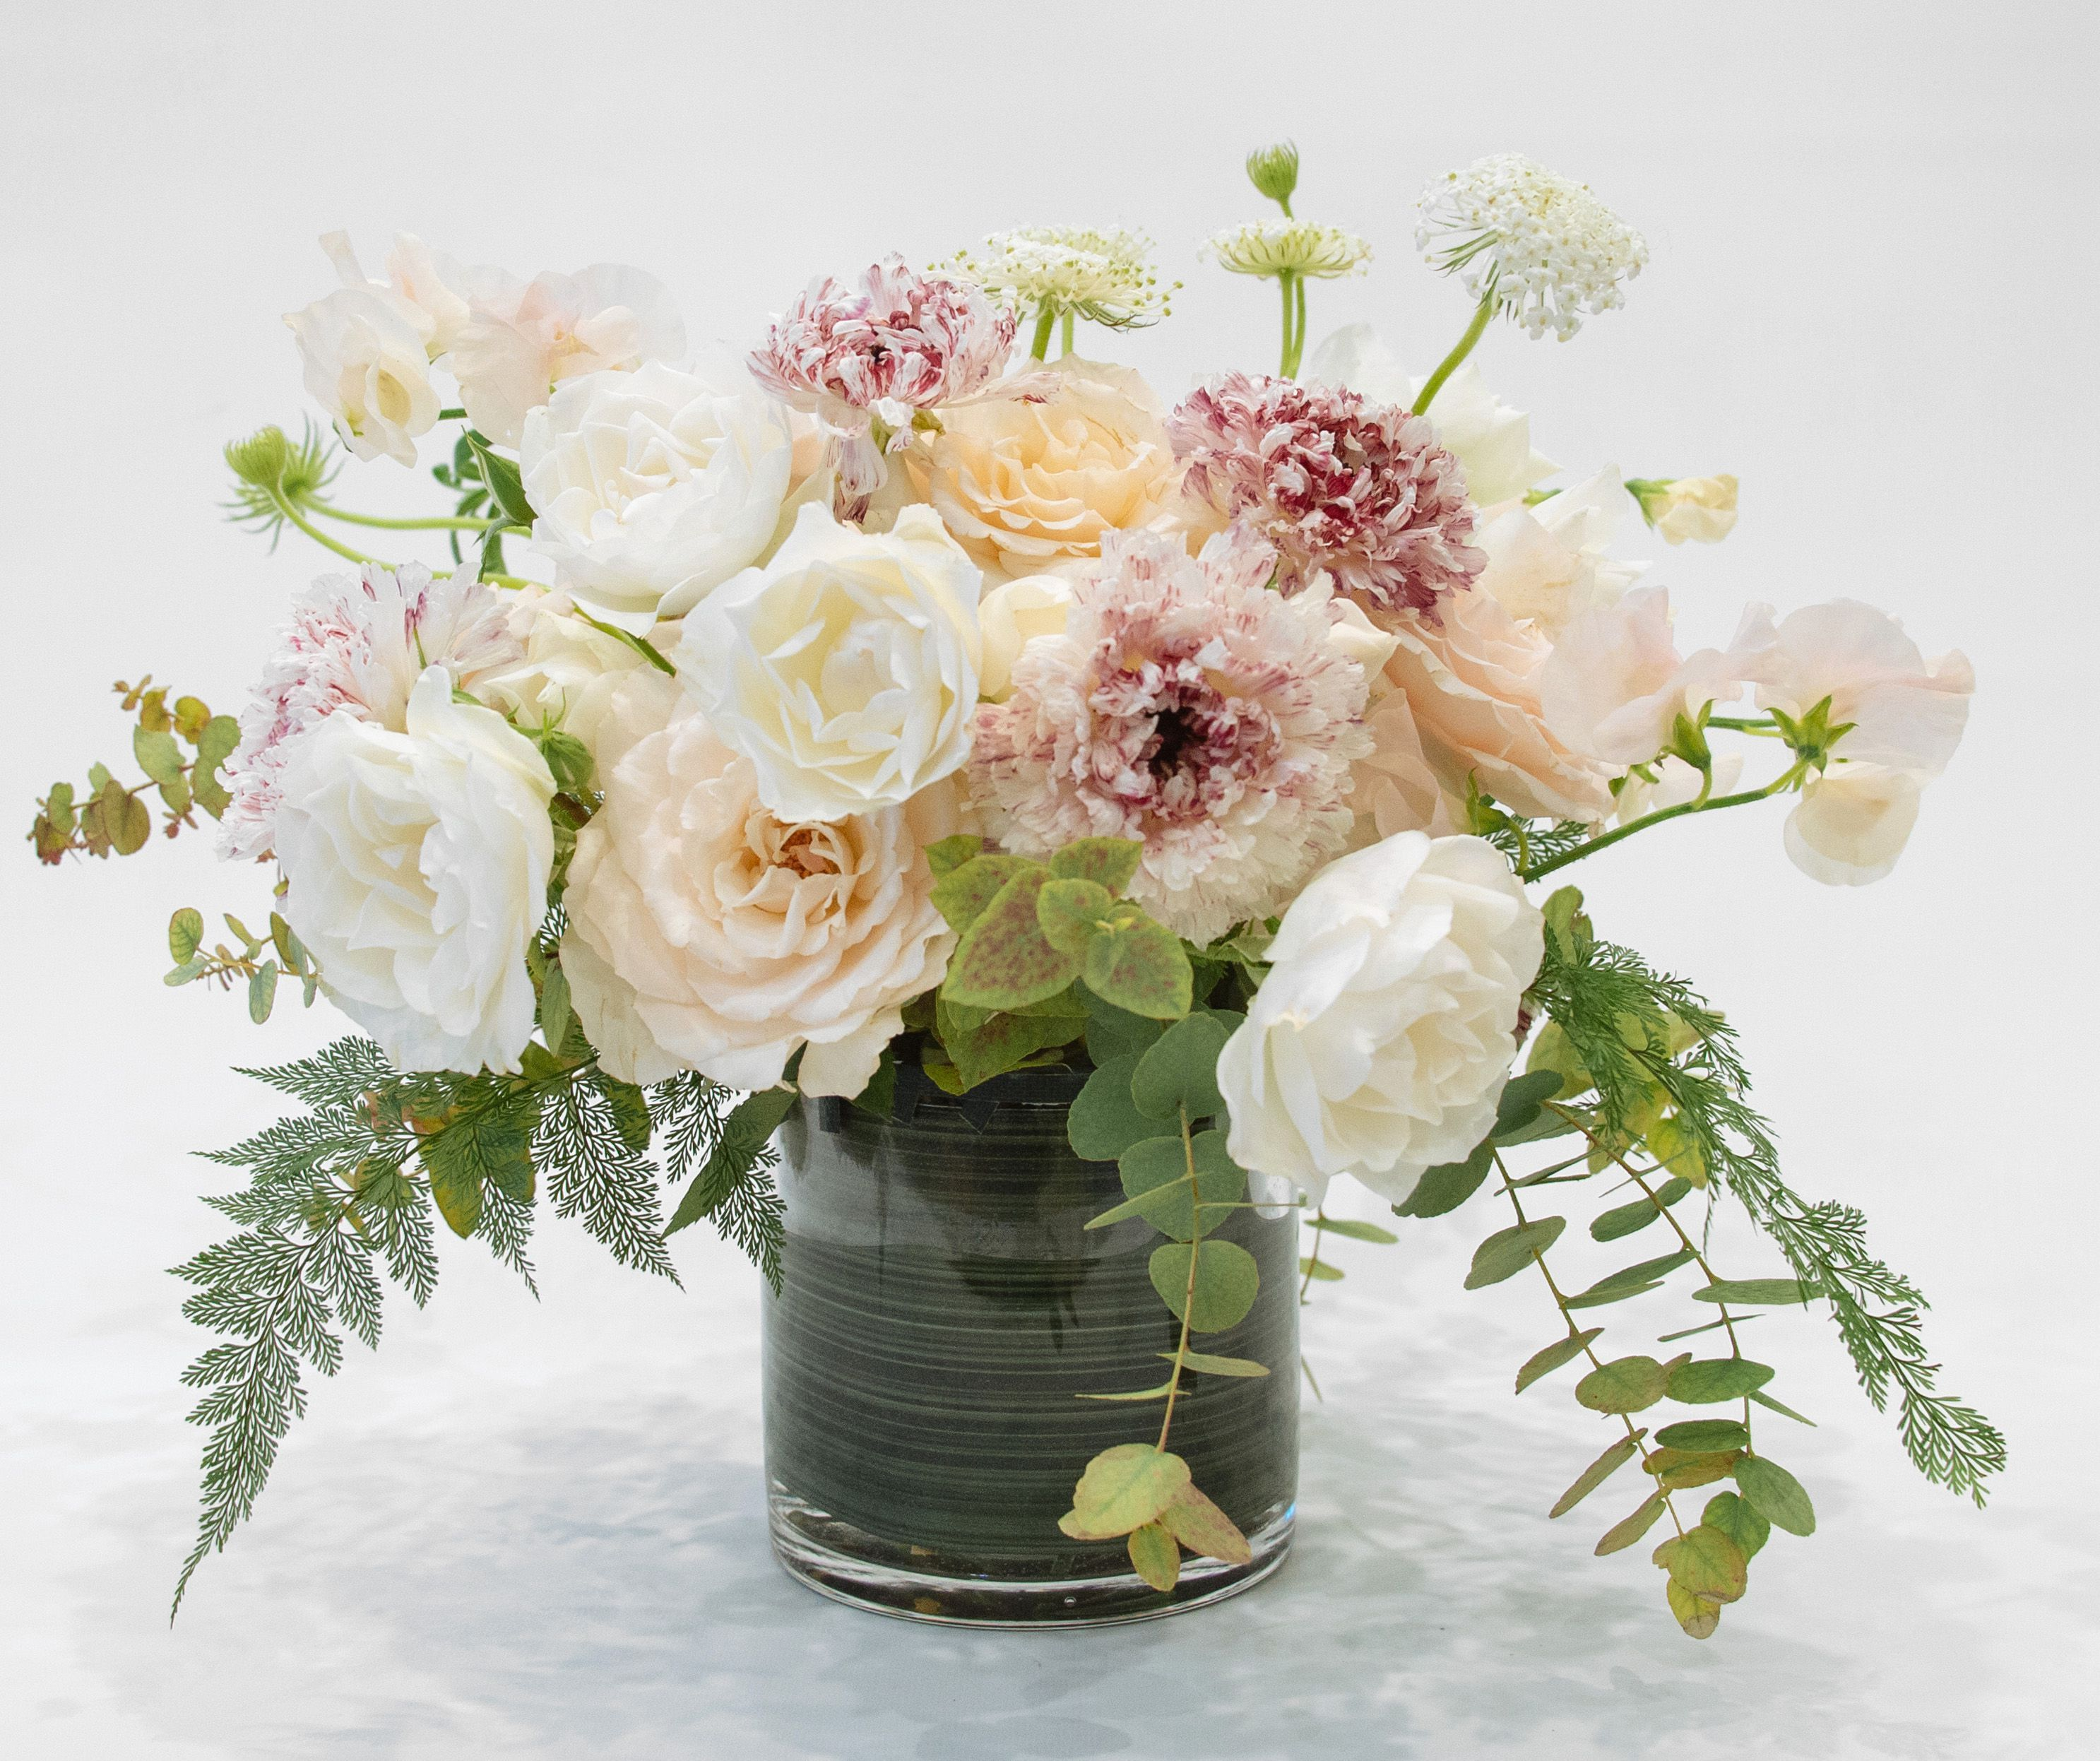 The 10 Best Places To Buy Flowers Online Hacks Plant Buy